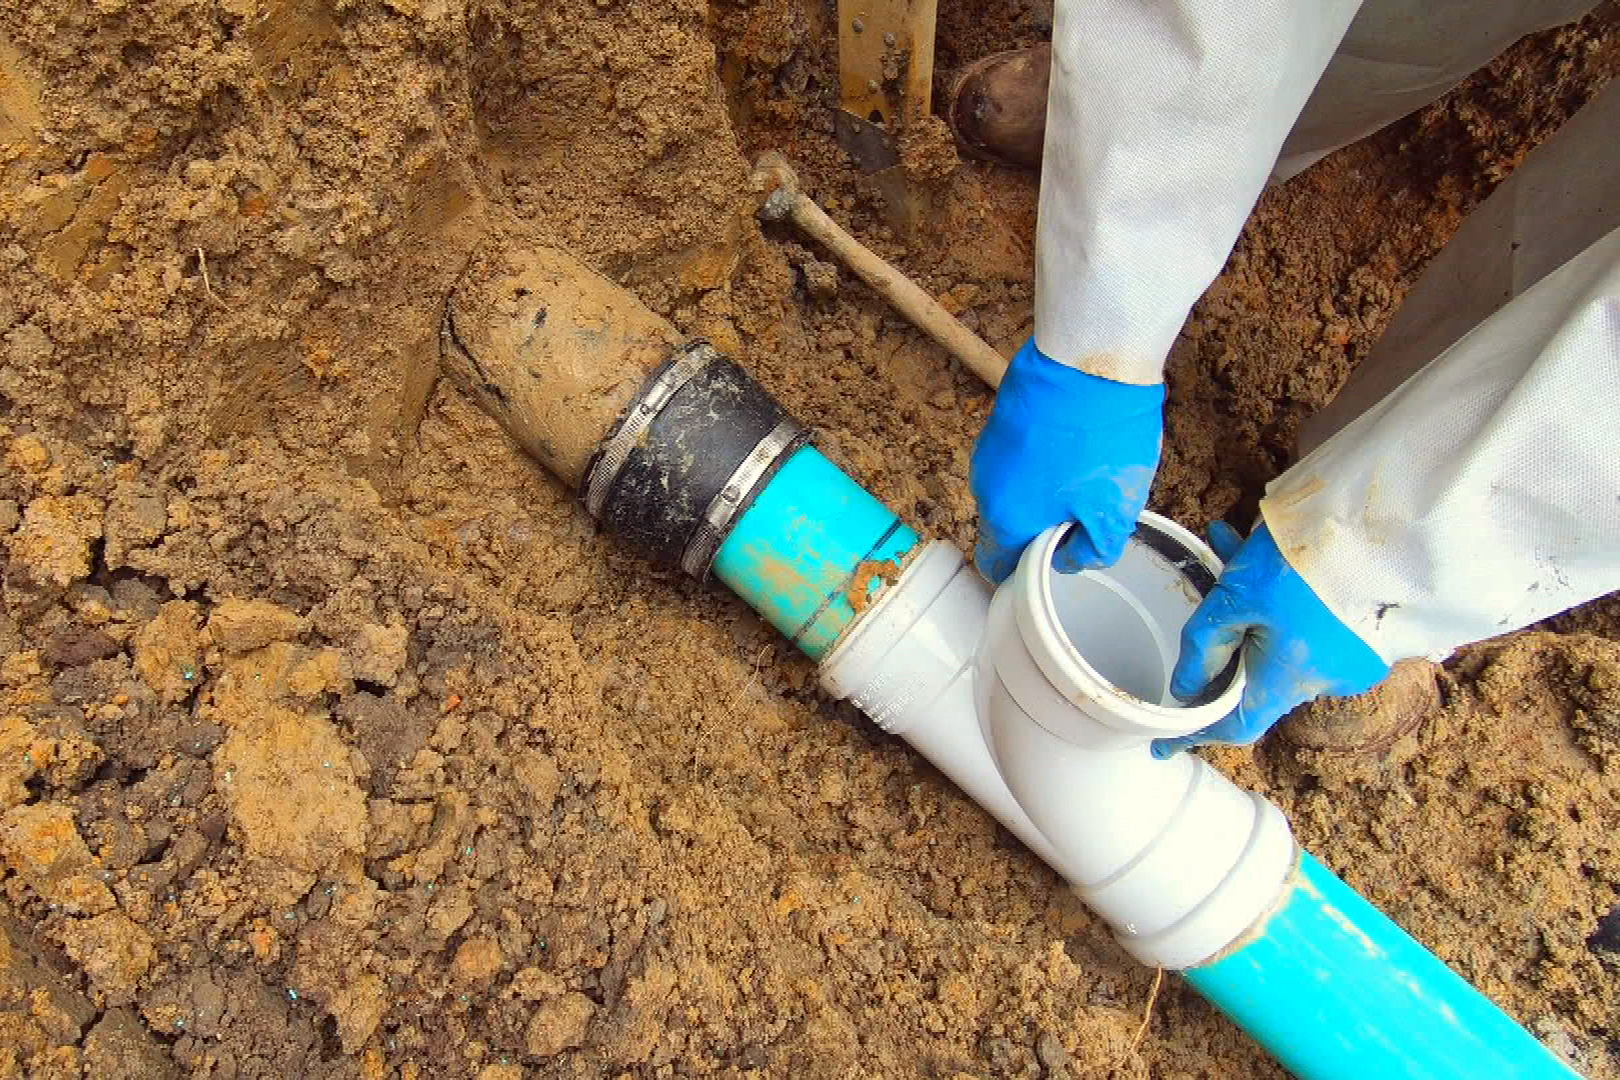 Two gloved hands holding a sewer pipe in the dirt